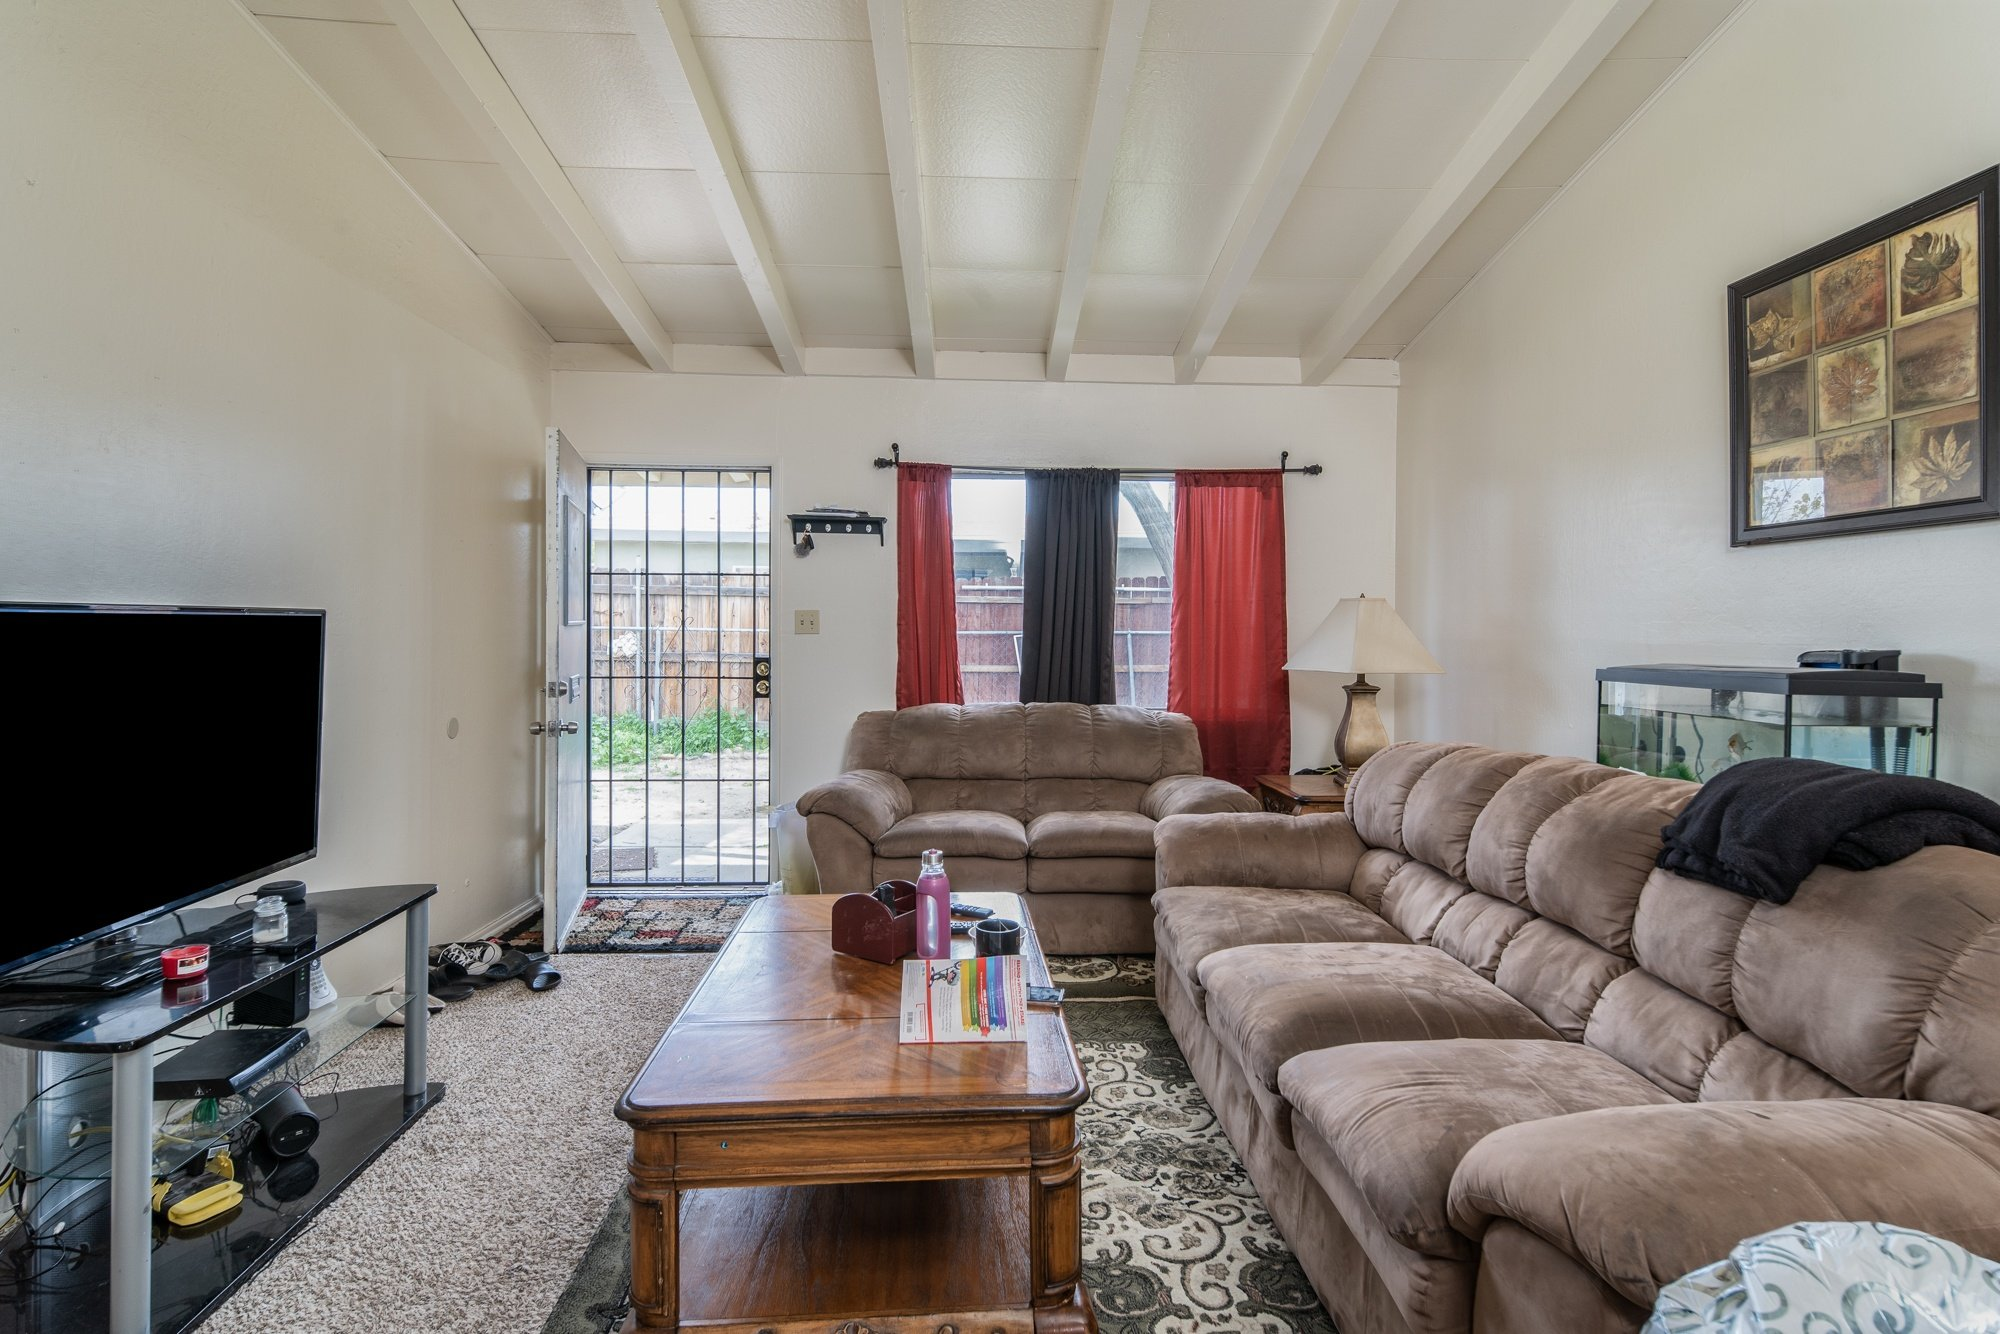 Palmdale, CA best real estate agent 557 - 559 West Avenue H 8, Lancaster, CA 93534 (living room 3)